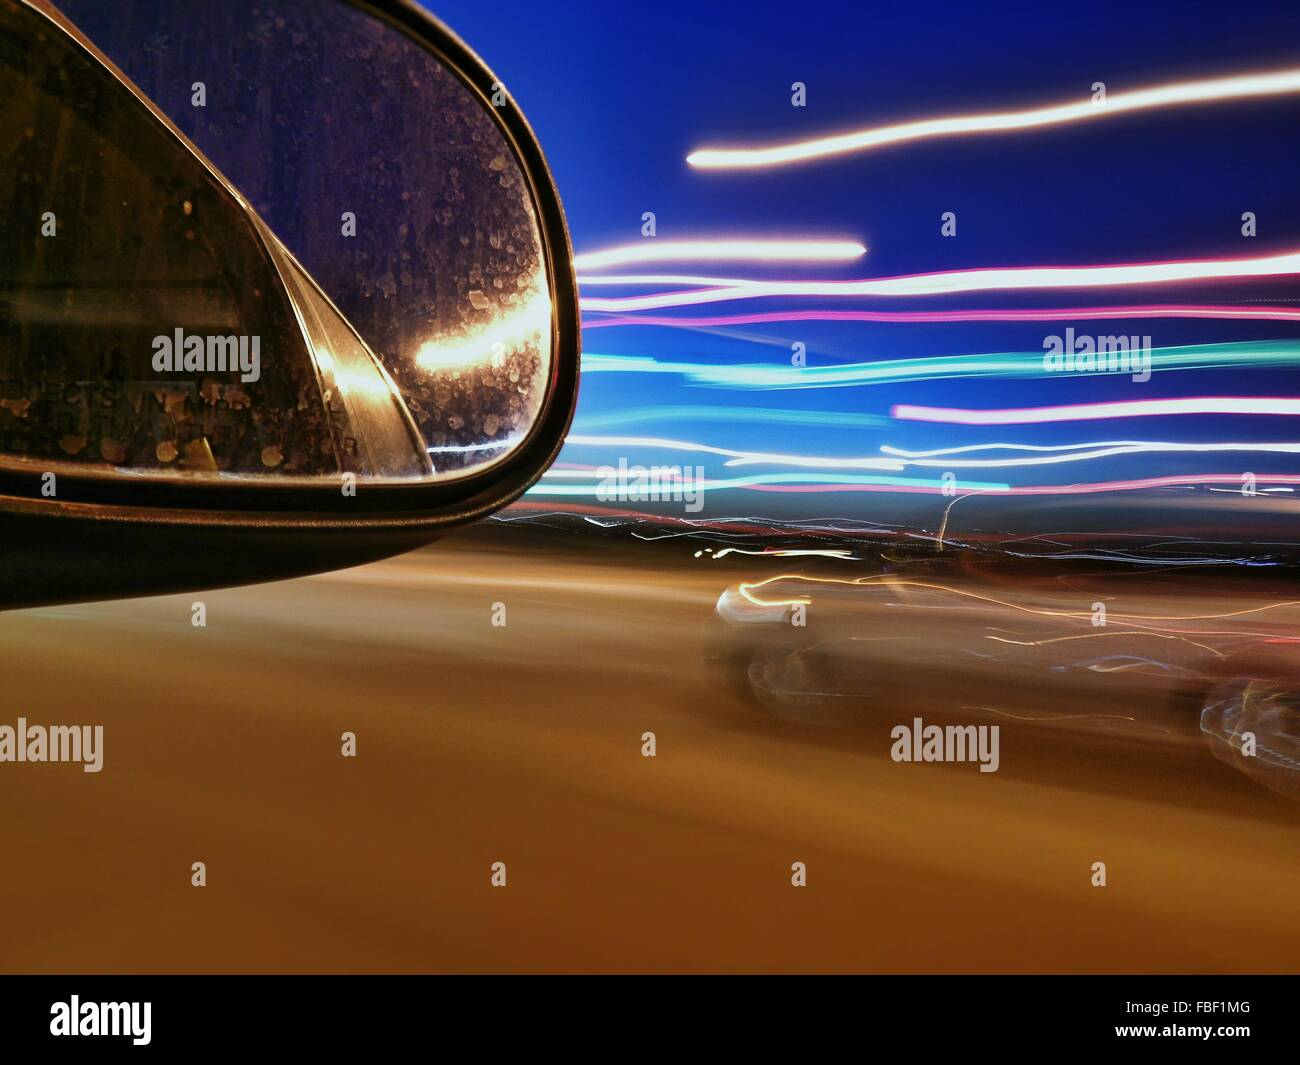 Side-View Mirror And Light Trails On Street At Night - Stock Image